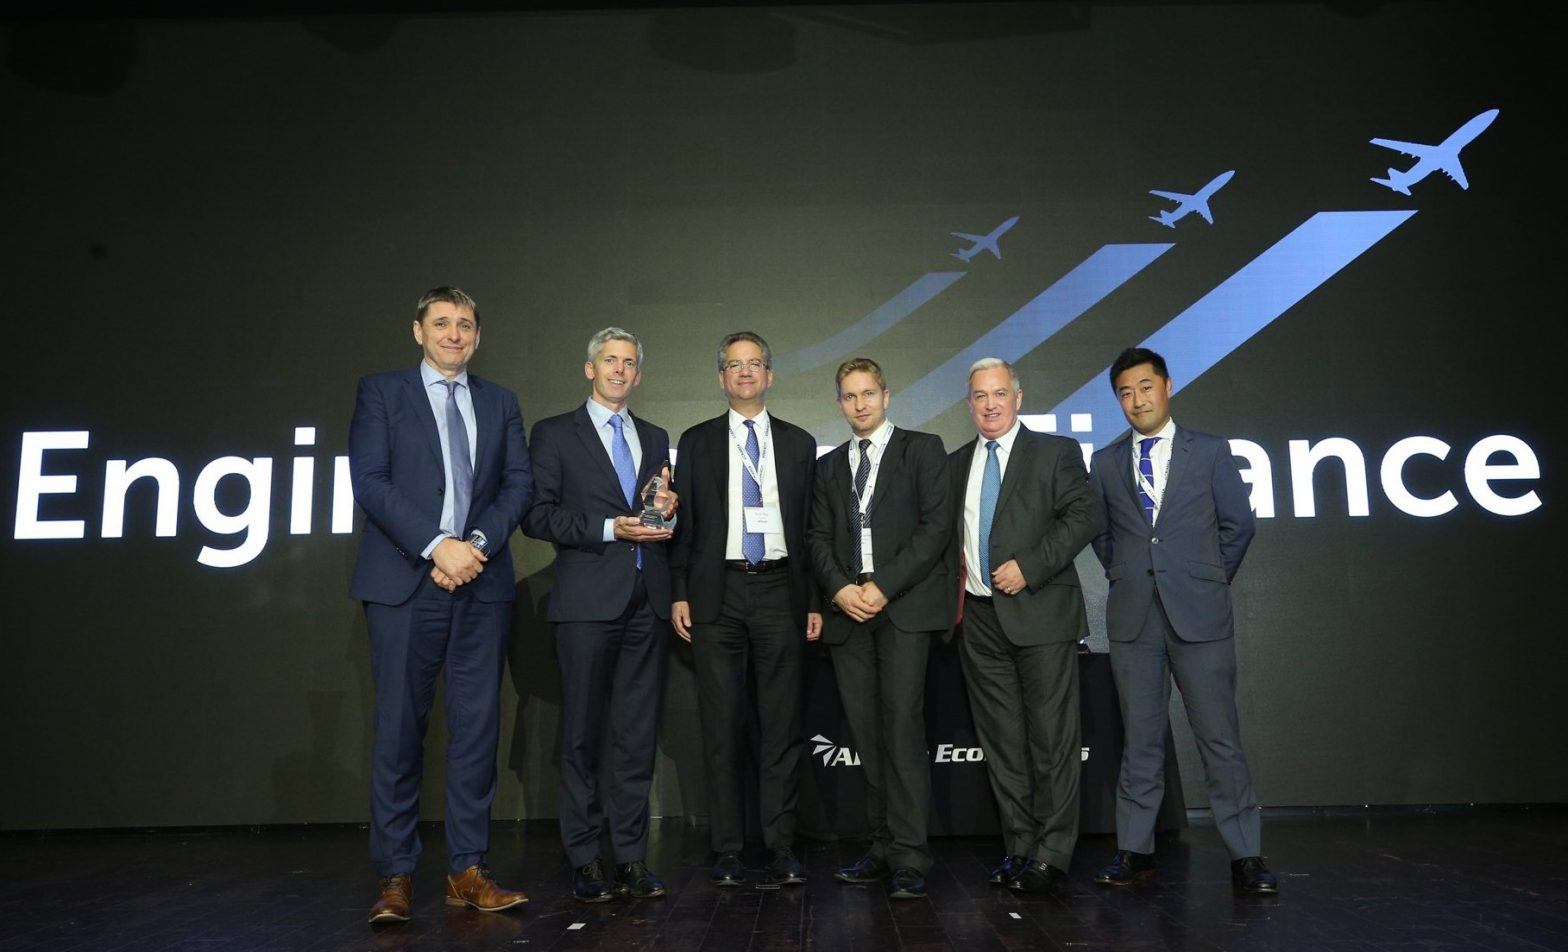 JOL Air-2019-01 wins the Asia Pacific Overall Deal Award - Stratos